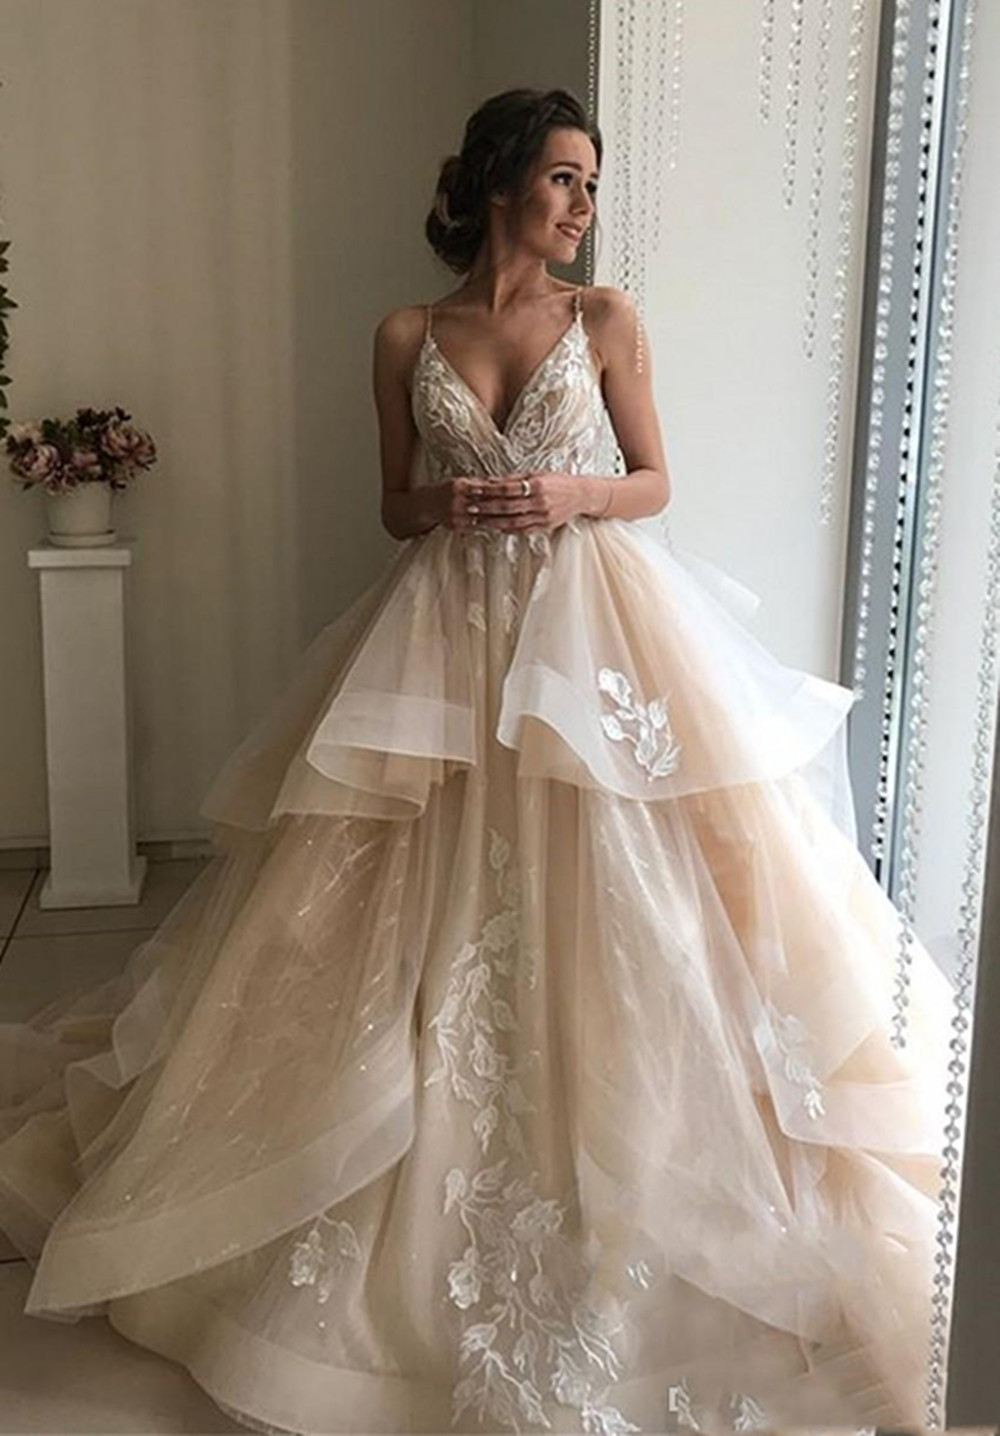 Pretty Champagne Floral Lace Wedding Dresses 2020 Sexy Backless Ruffles Puffy Bridal Gowns Beach Wedding Gowns Vestido De Noiva